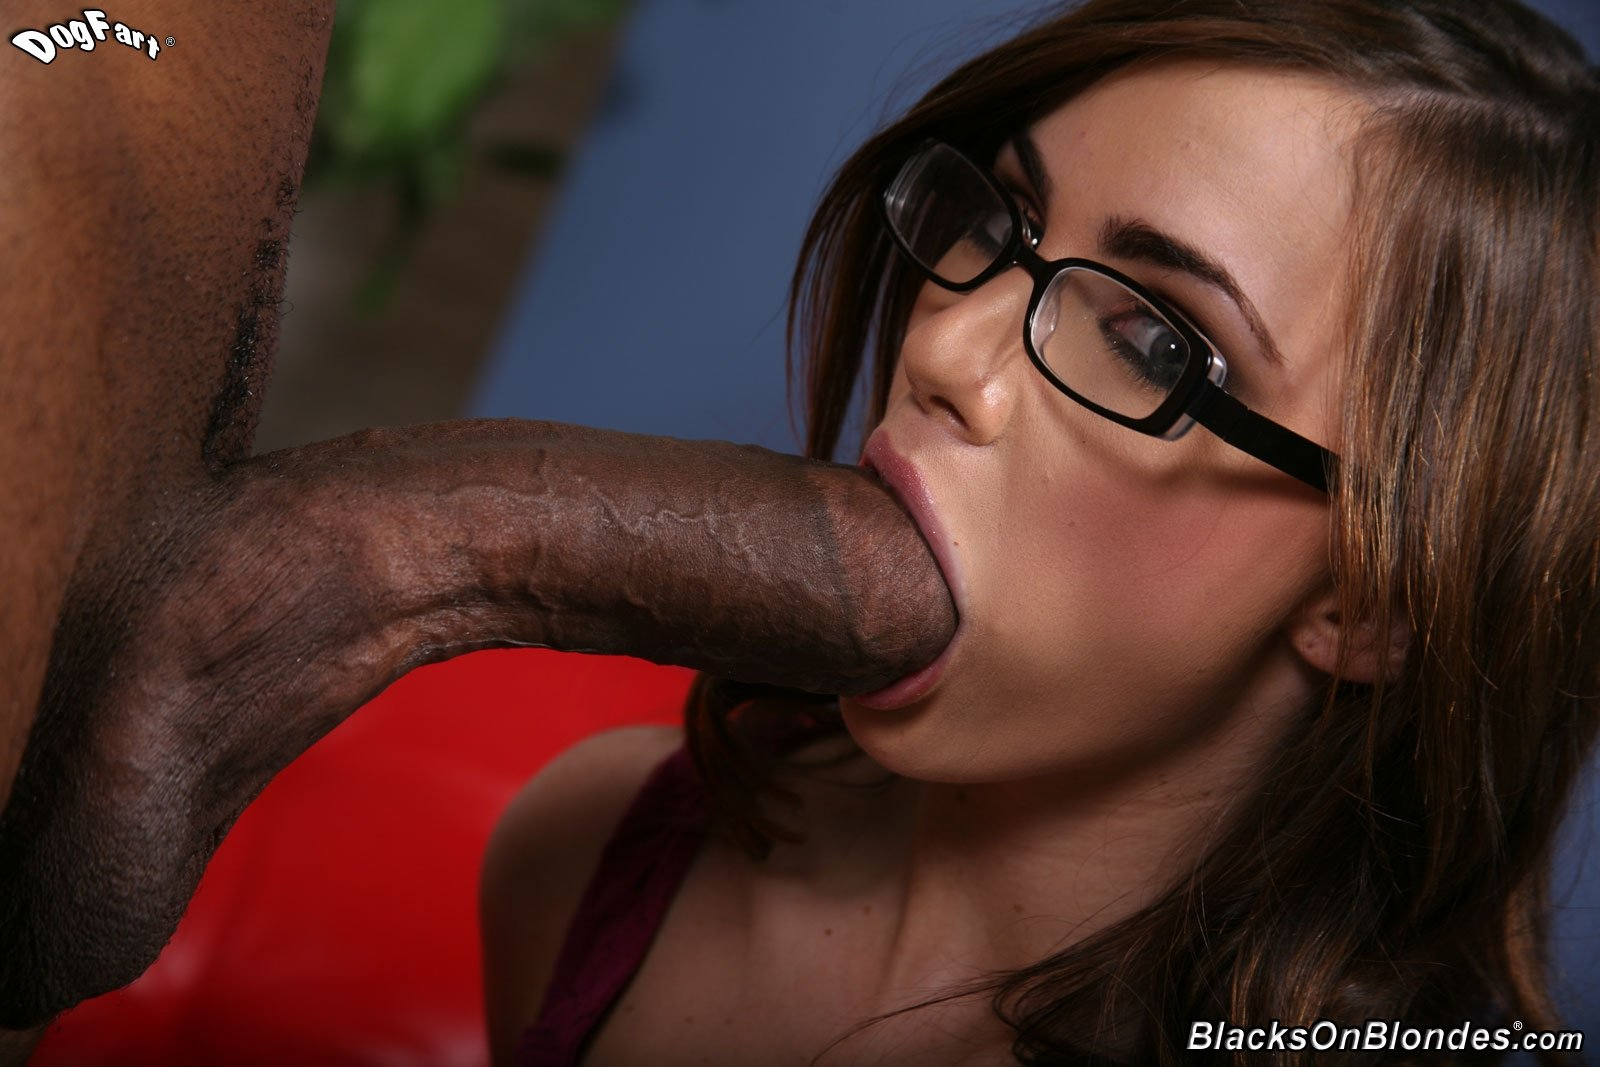 Anal hole creampie Wife and dildo